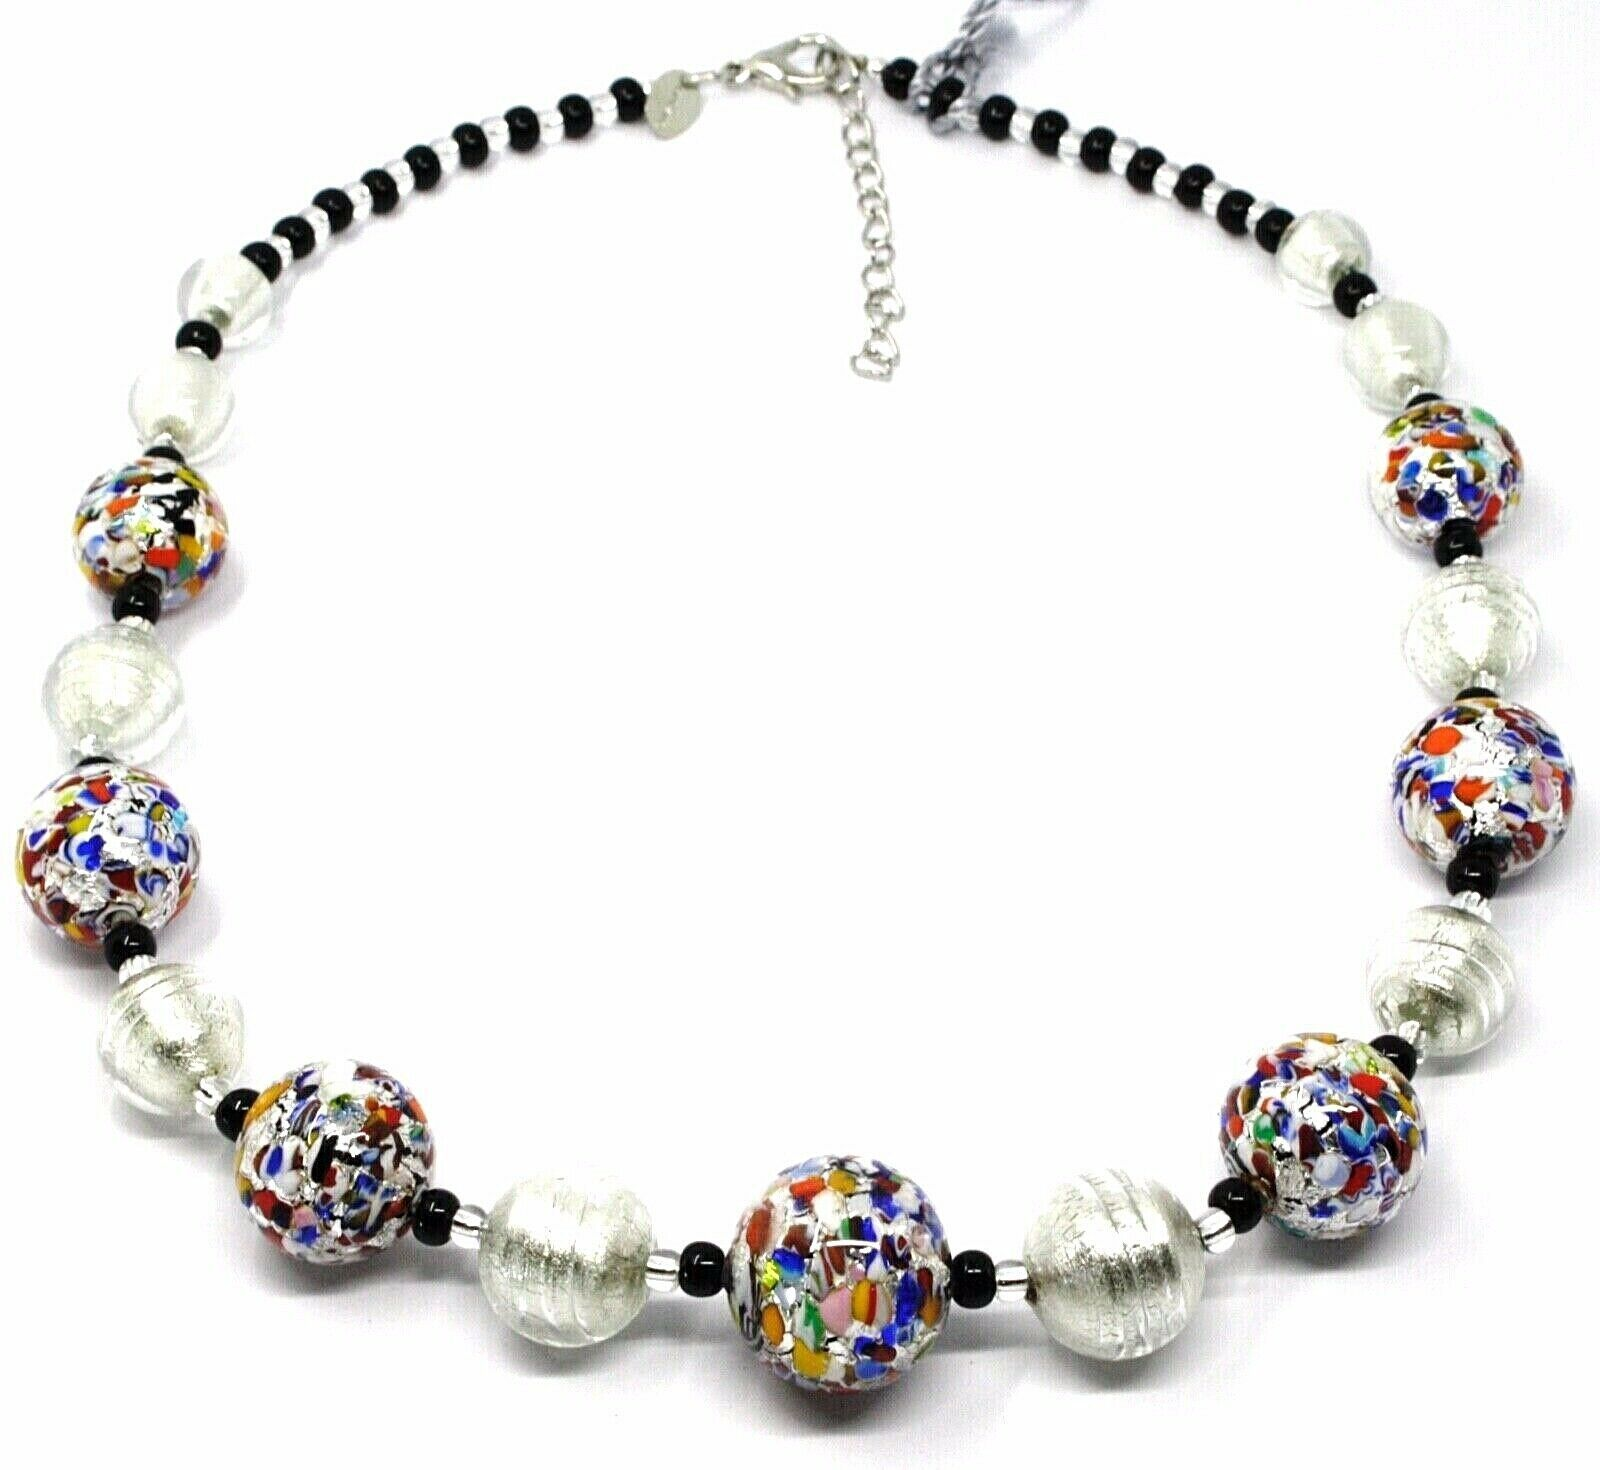 NECKLACE MACULATE MULTI COLOR MURANO GLASS BIG SPHERES, SILVER LEAF, ITALY MADE